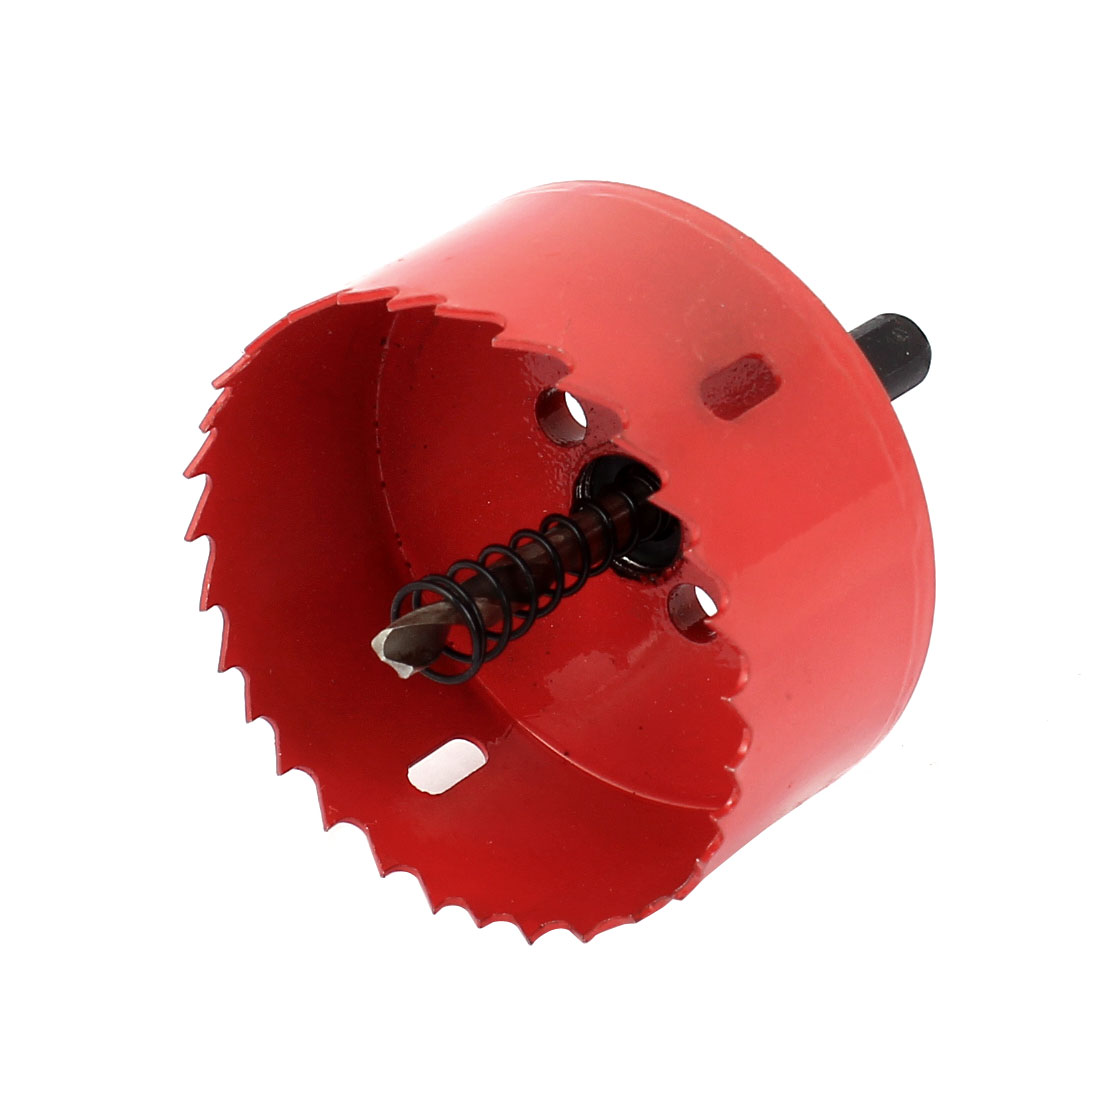 UXCELL 75Mm Cutting Dia Toothed Bi Metal Hole Saw Cutter Drill Bit Red For Wood Iron 55mm cutting dia sds plus shank concrete cement stone wall hole saw drill bit